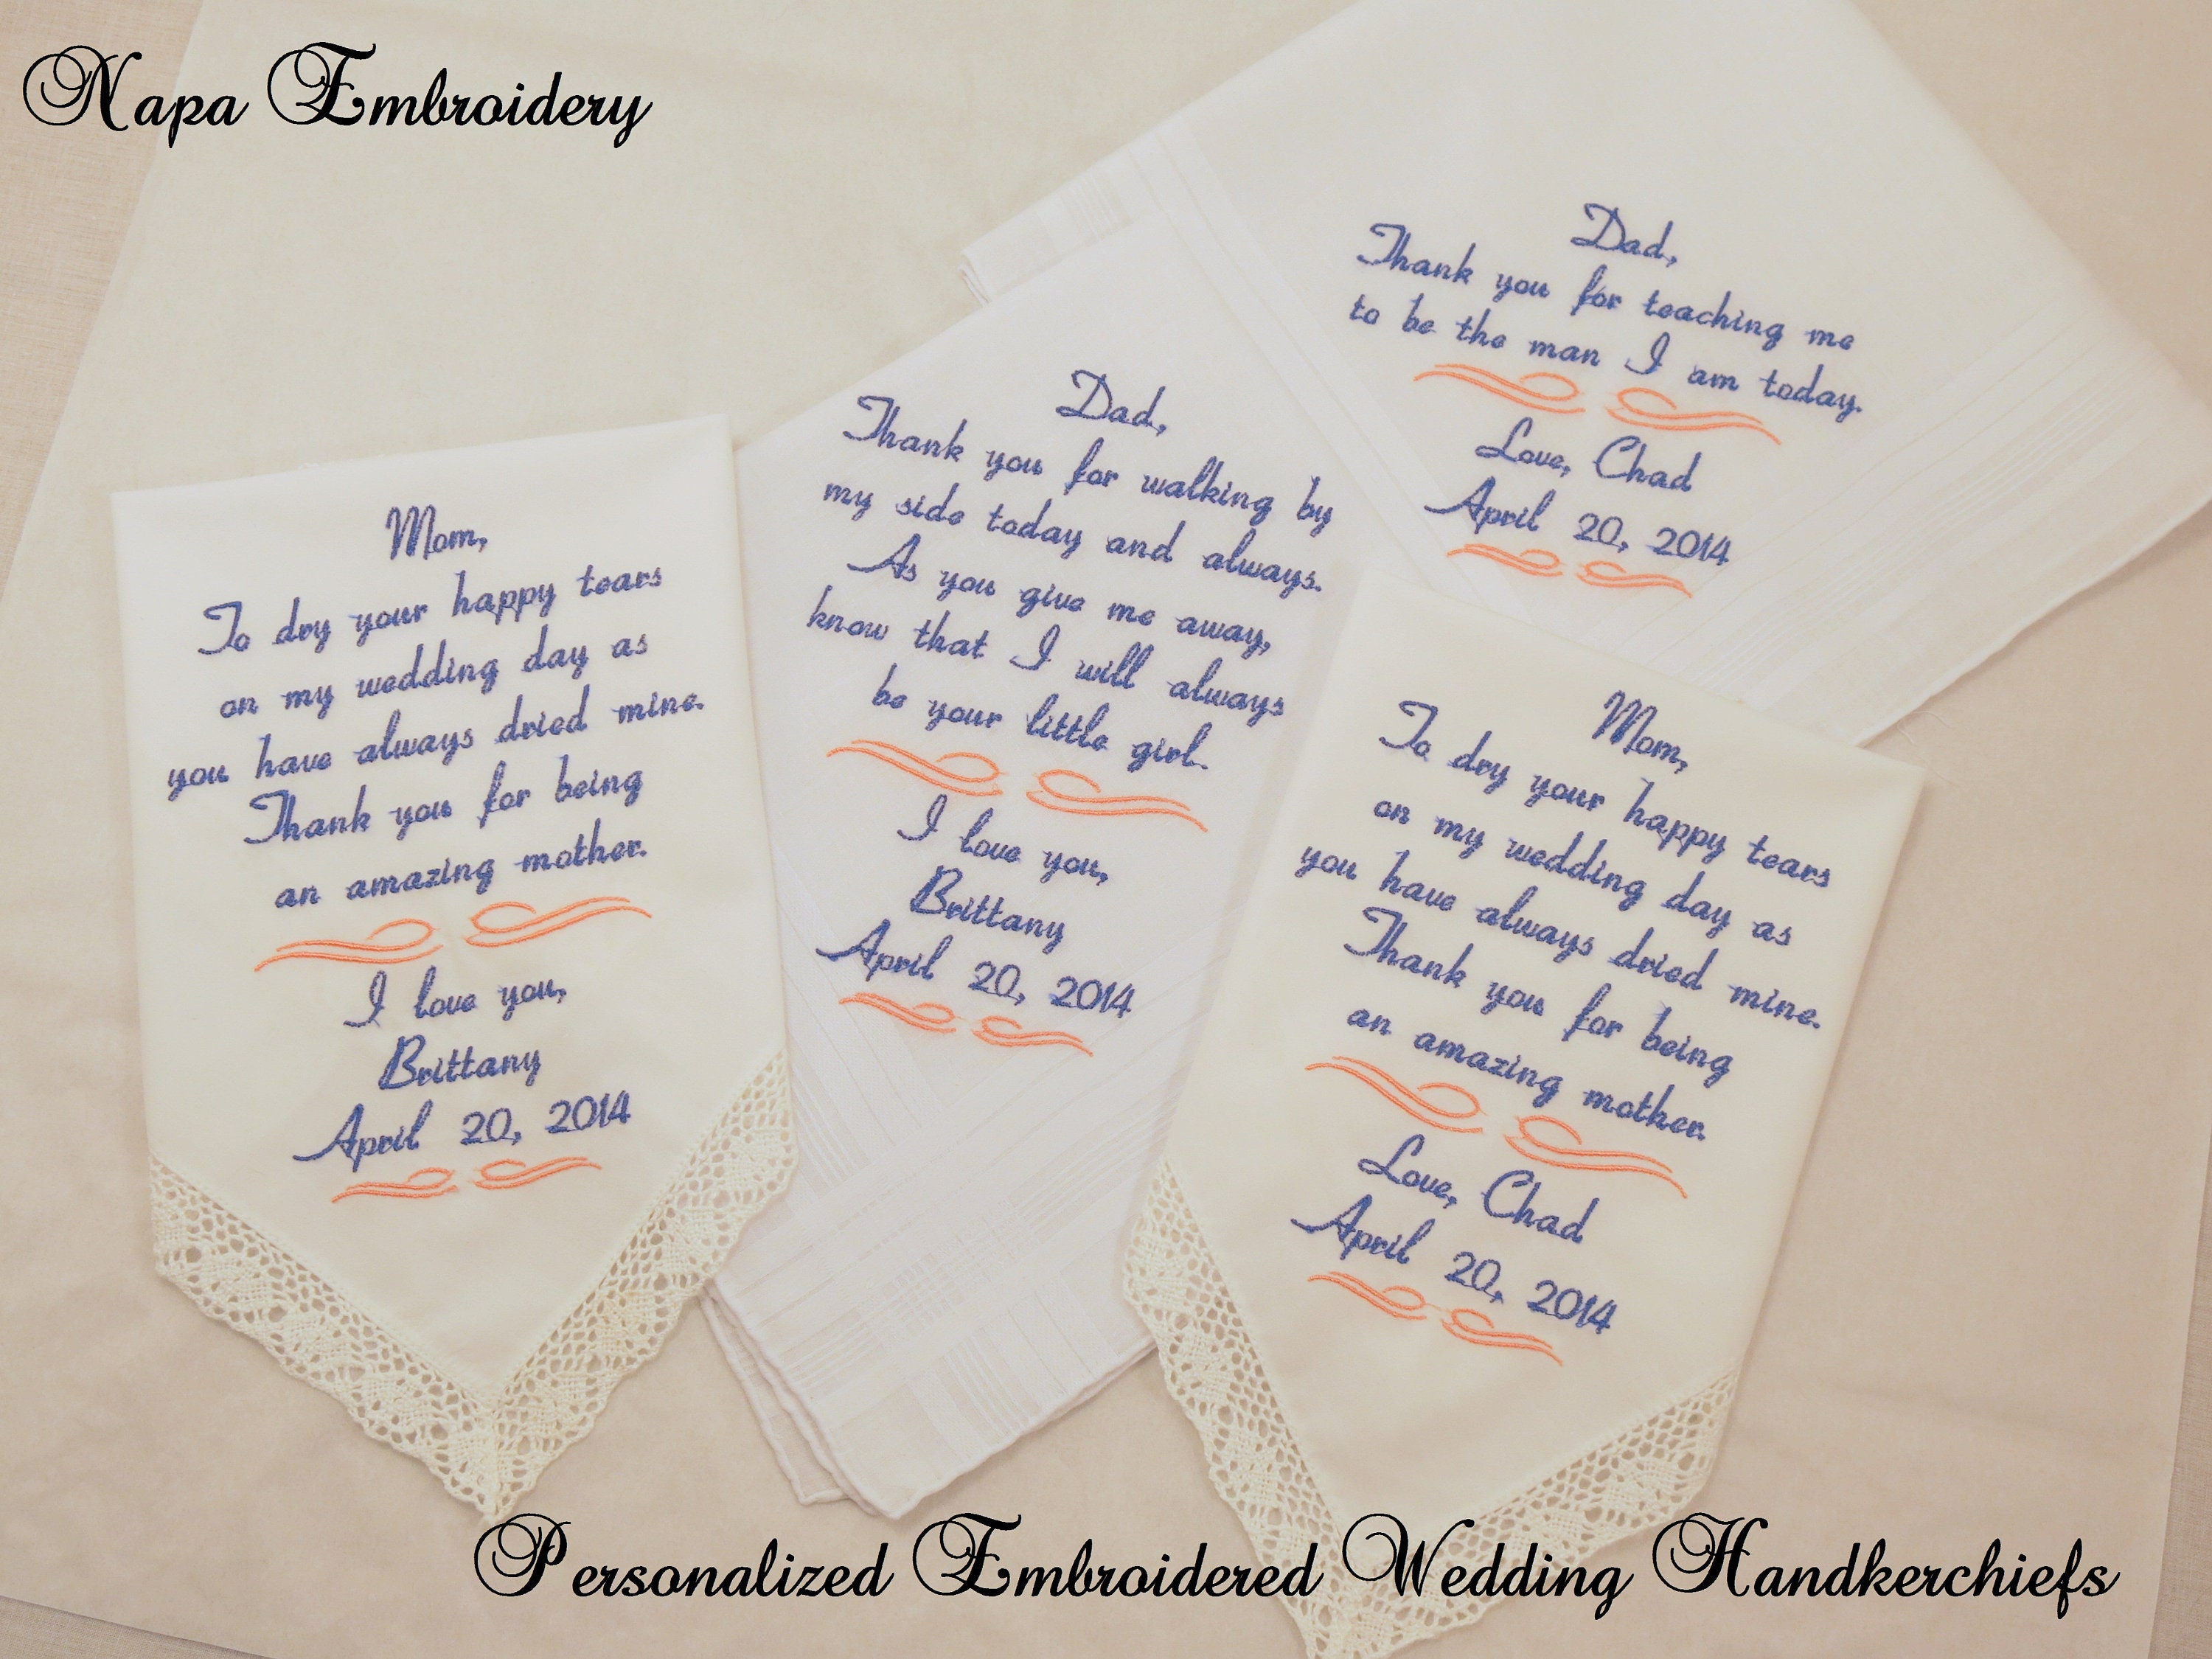 Wedding Handkerchiefs For The Family: Set Of Four Embroidered Wedding Handkerchiefs Gifts For